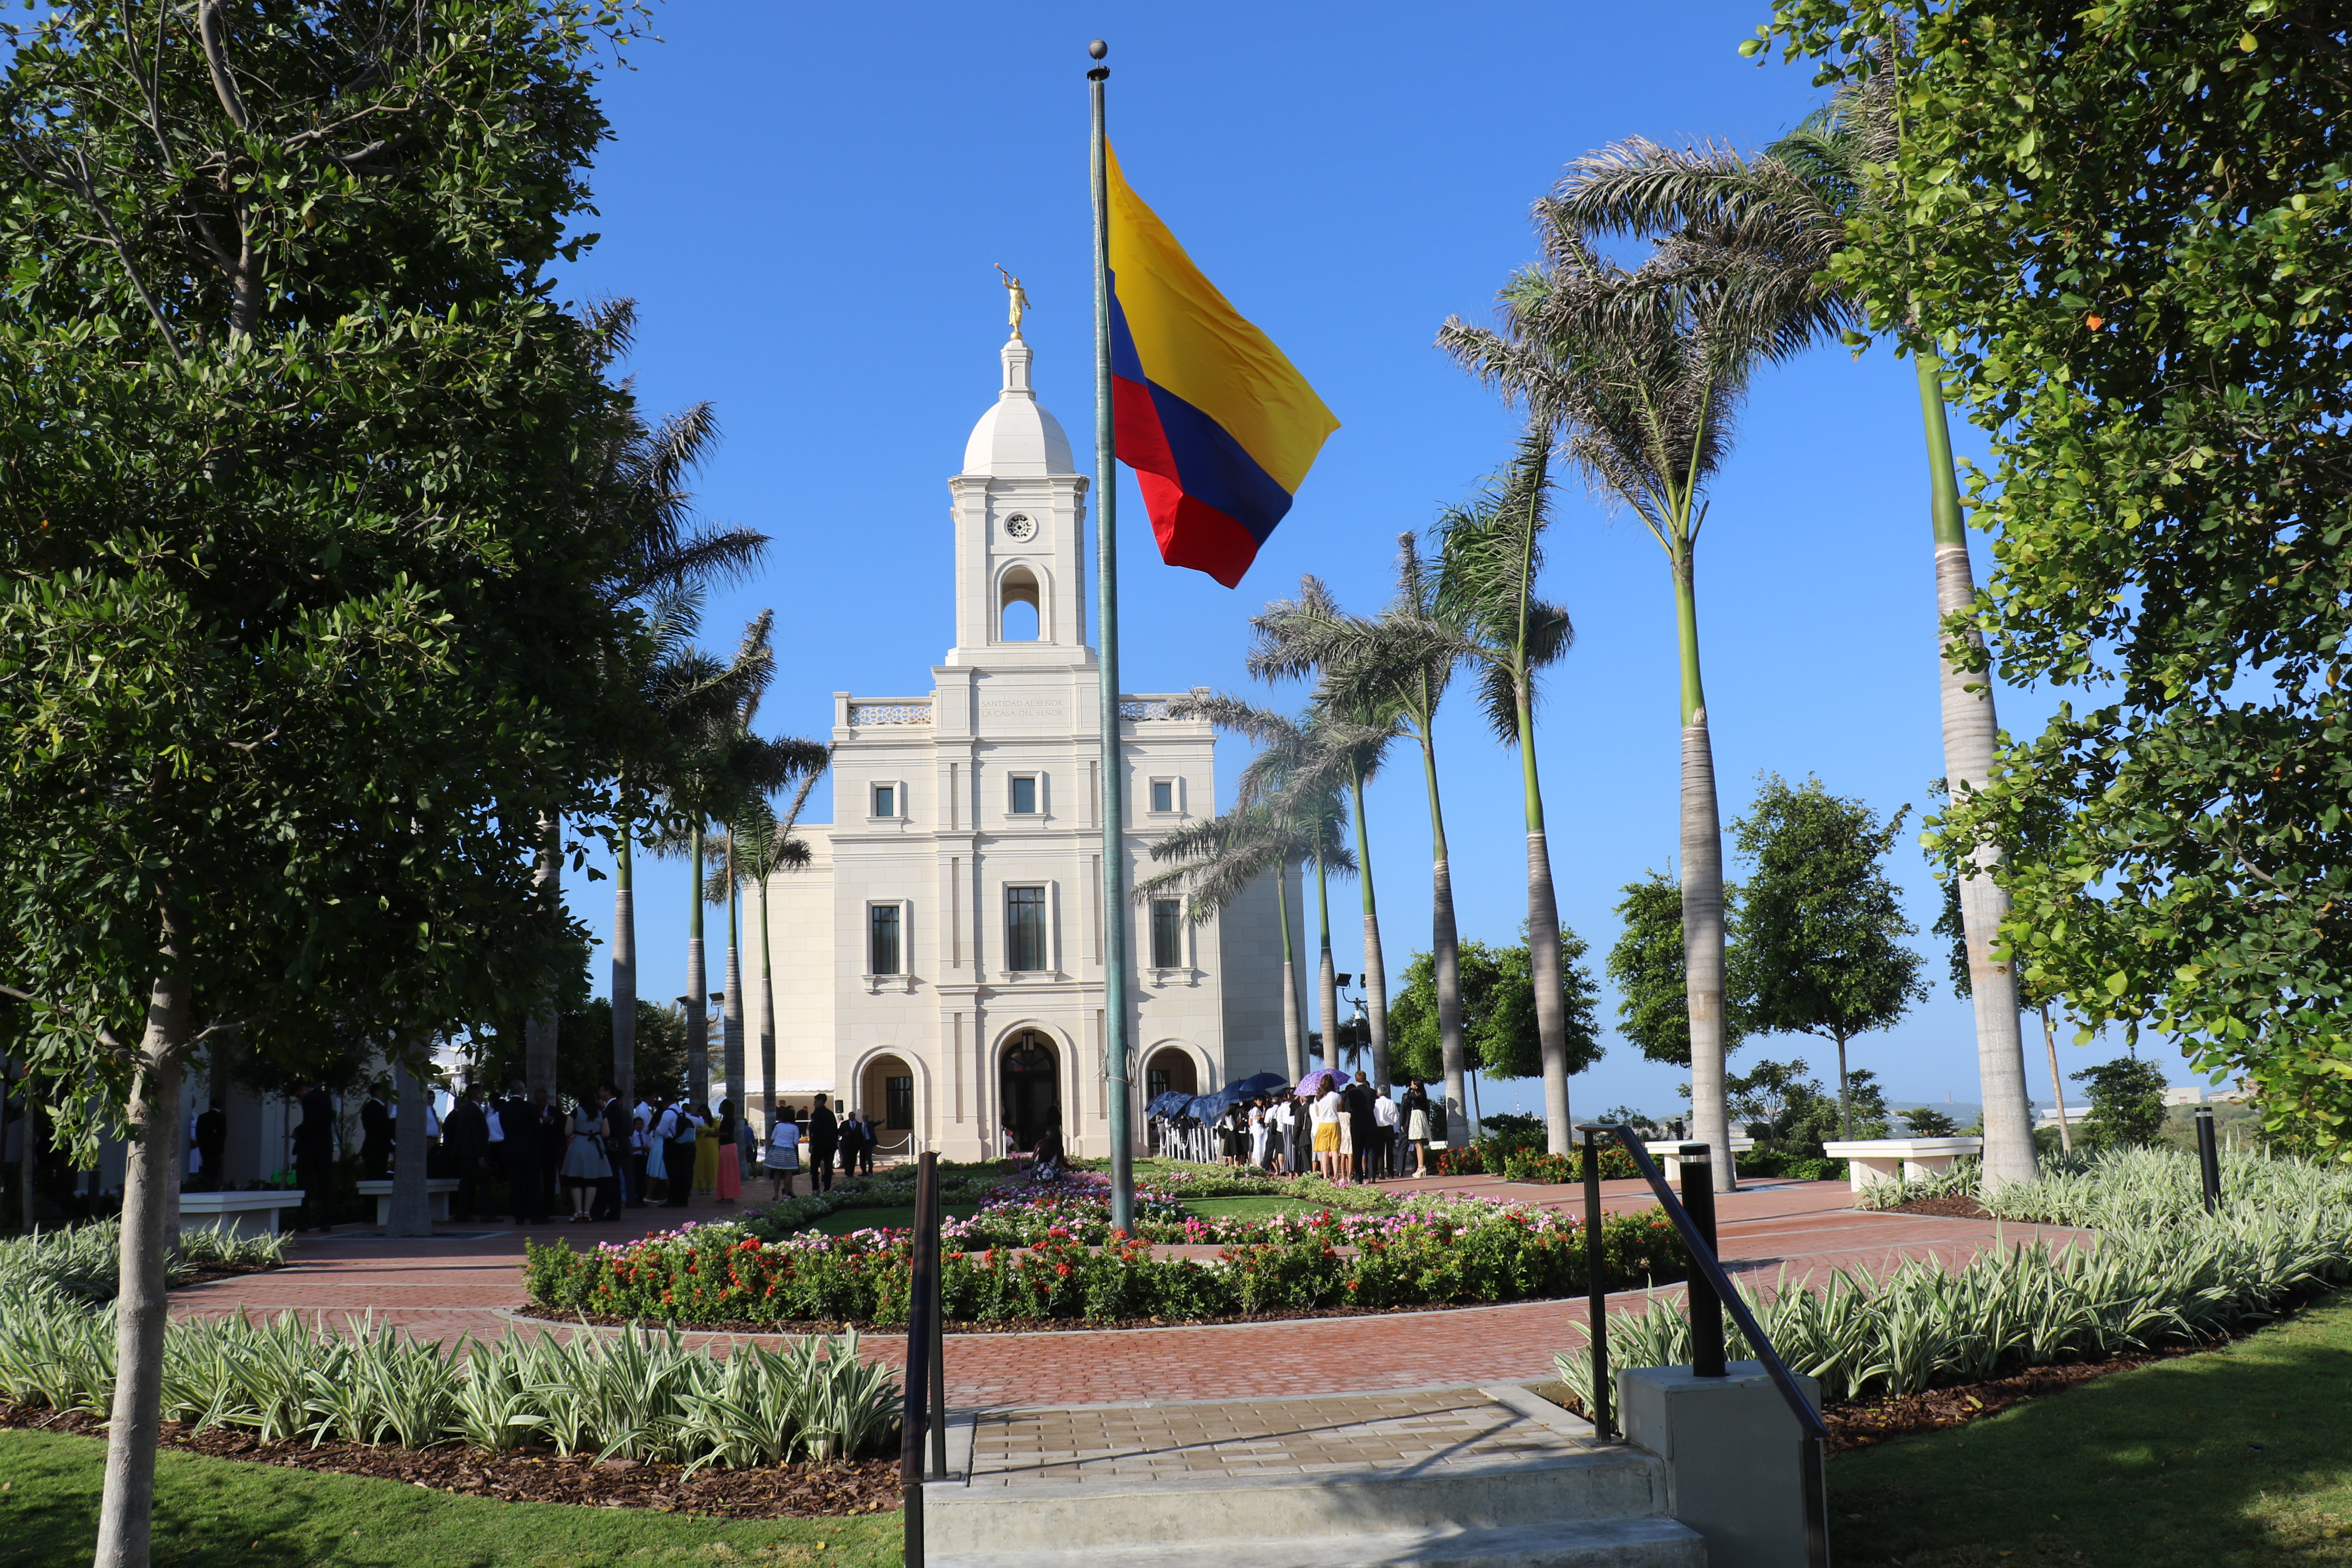 Dedicated Dec. 9, 2018, the Barranquilla Colombia temple is that nations second temple and the 161st in operation in the world.